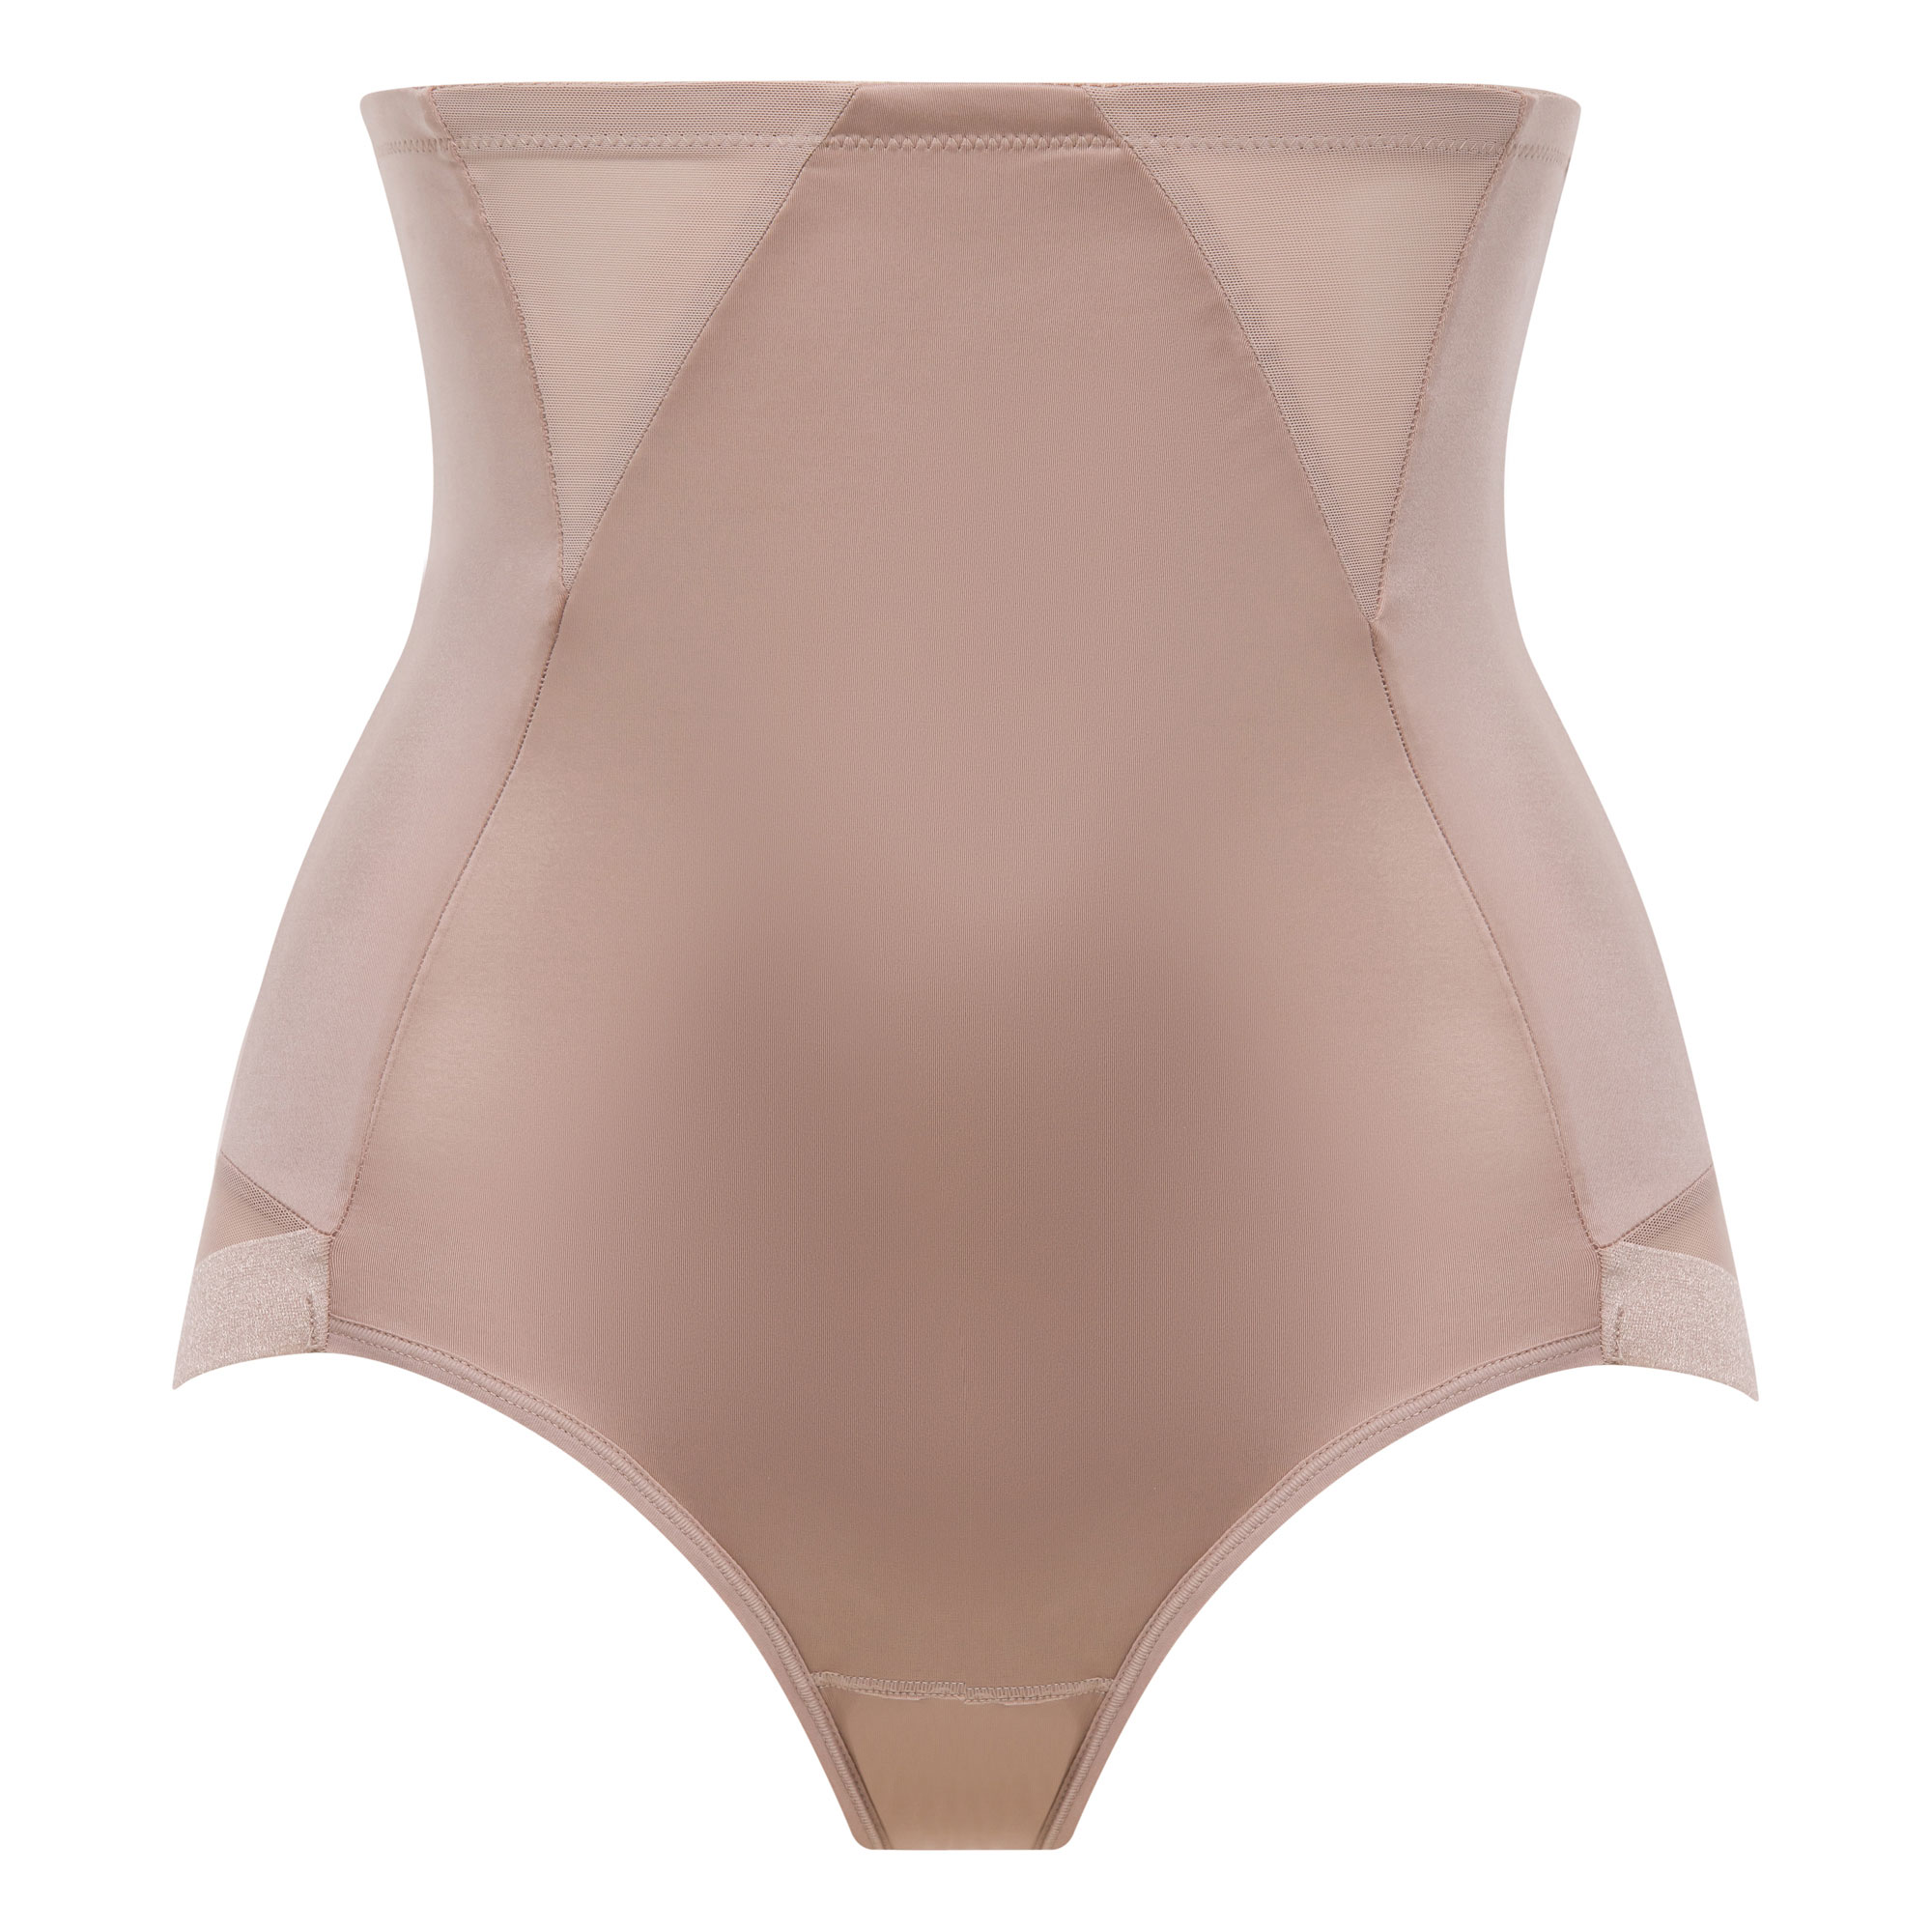 Gaine serre-taille beige - Perfect Silhouette, , PLAYTEX